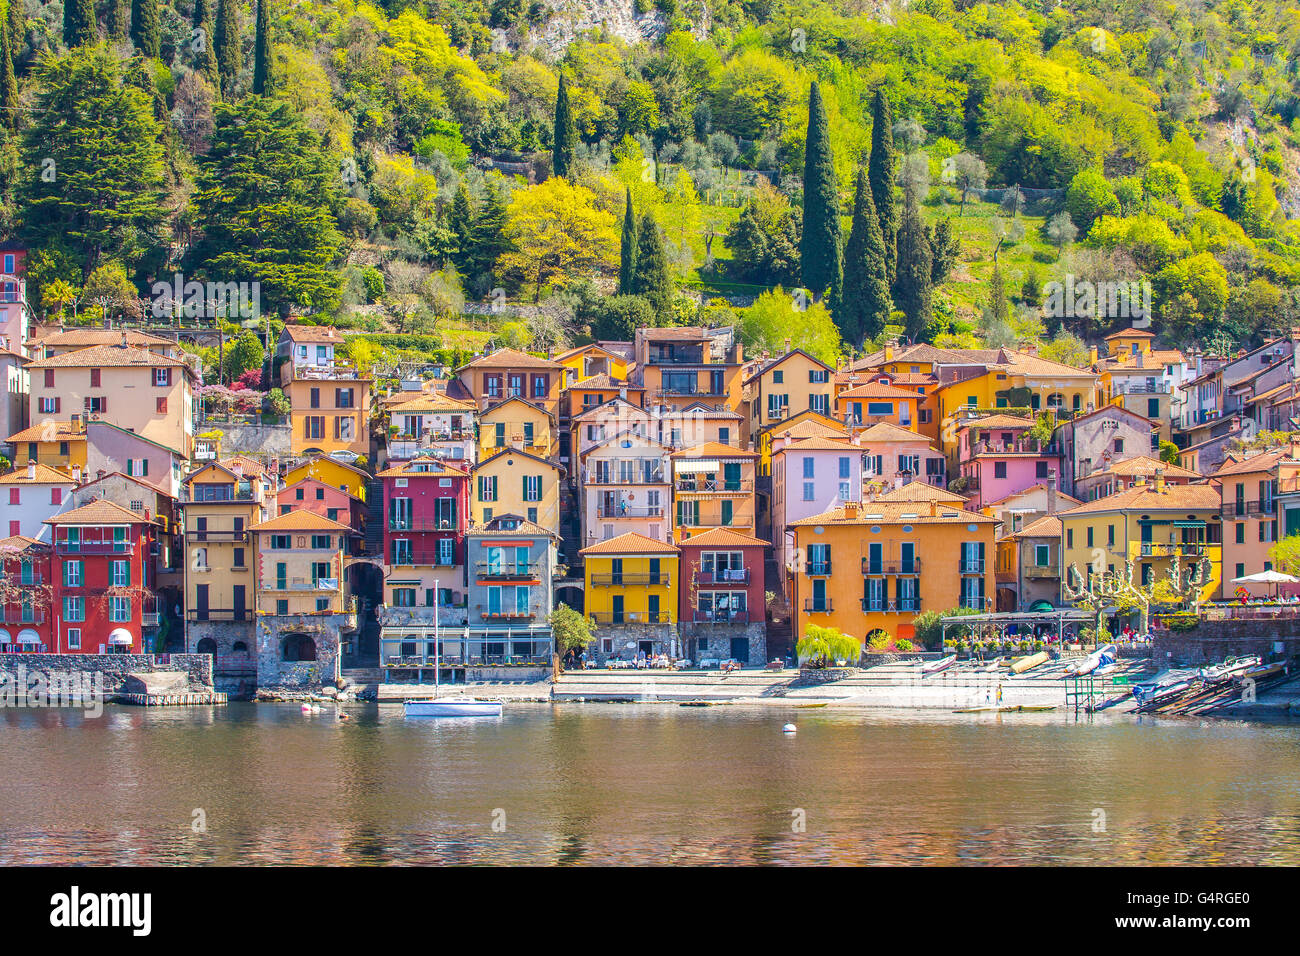 The Varenna on Lake Como in the Province of Lecco, Italy. - Stock Image